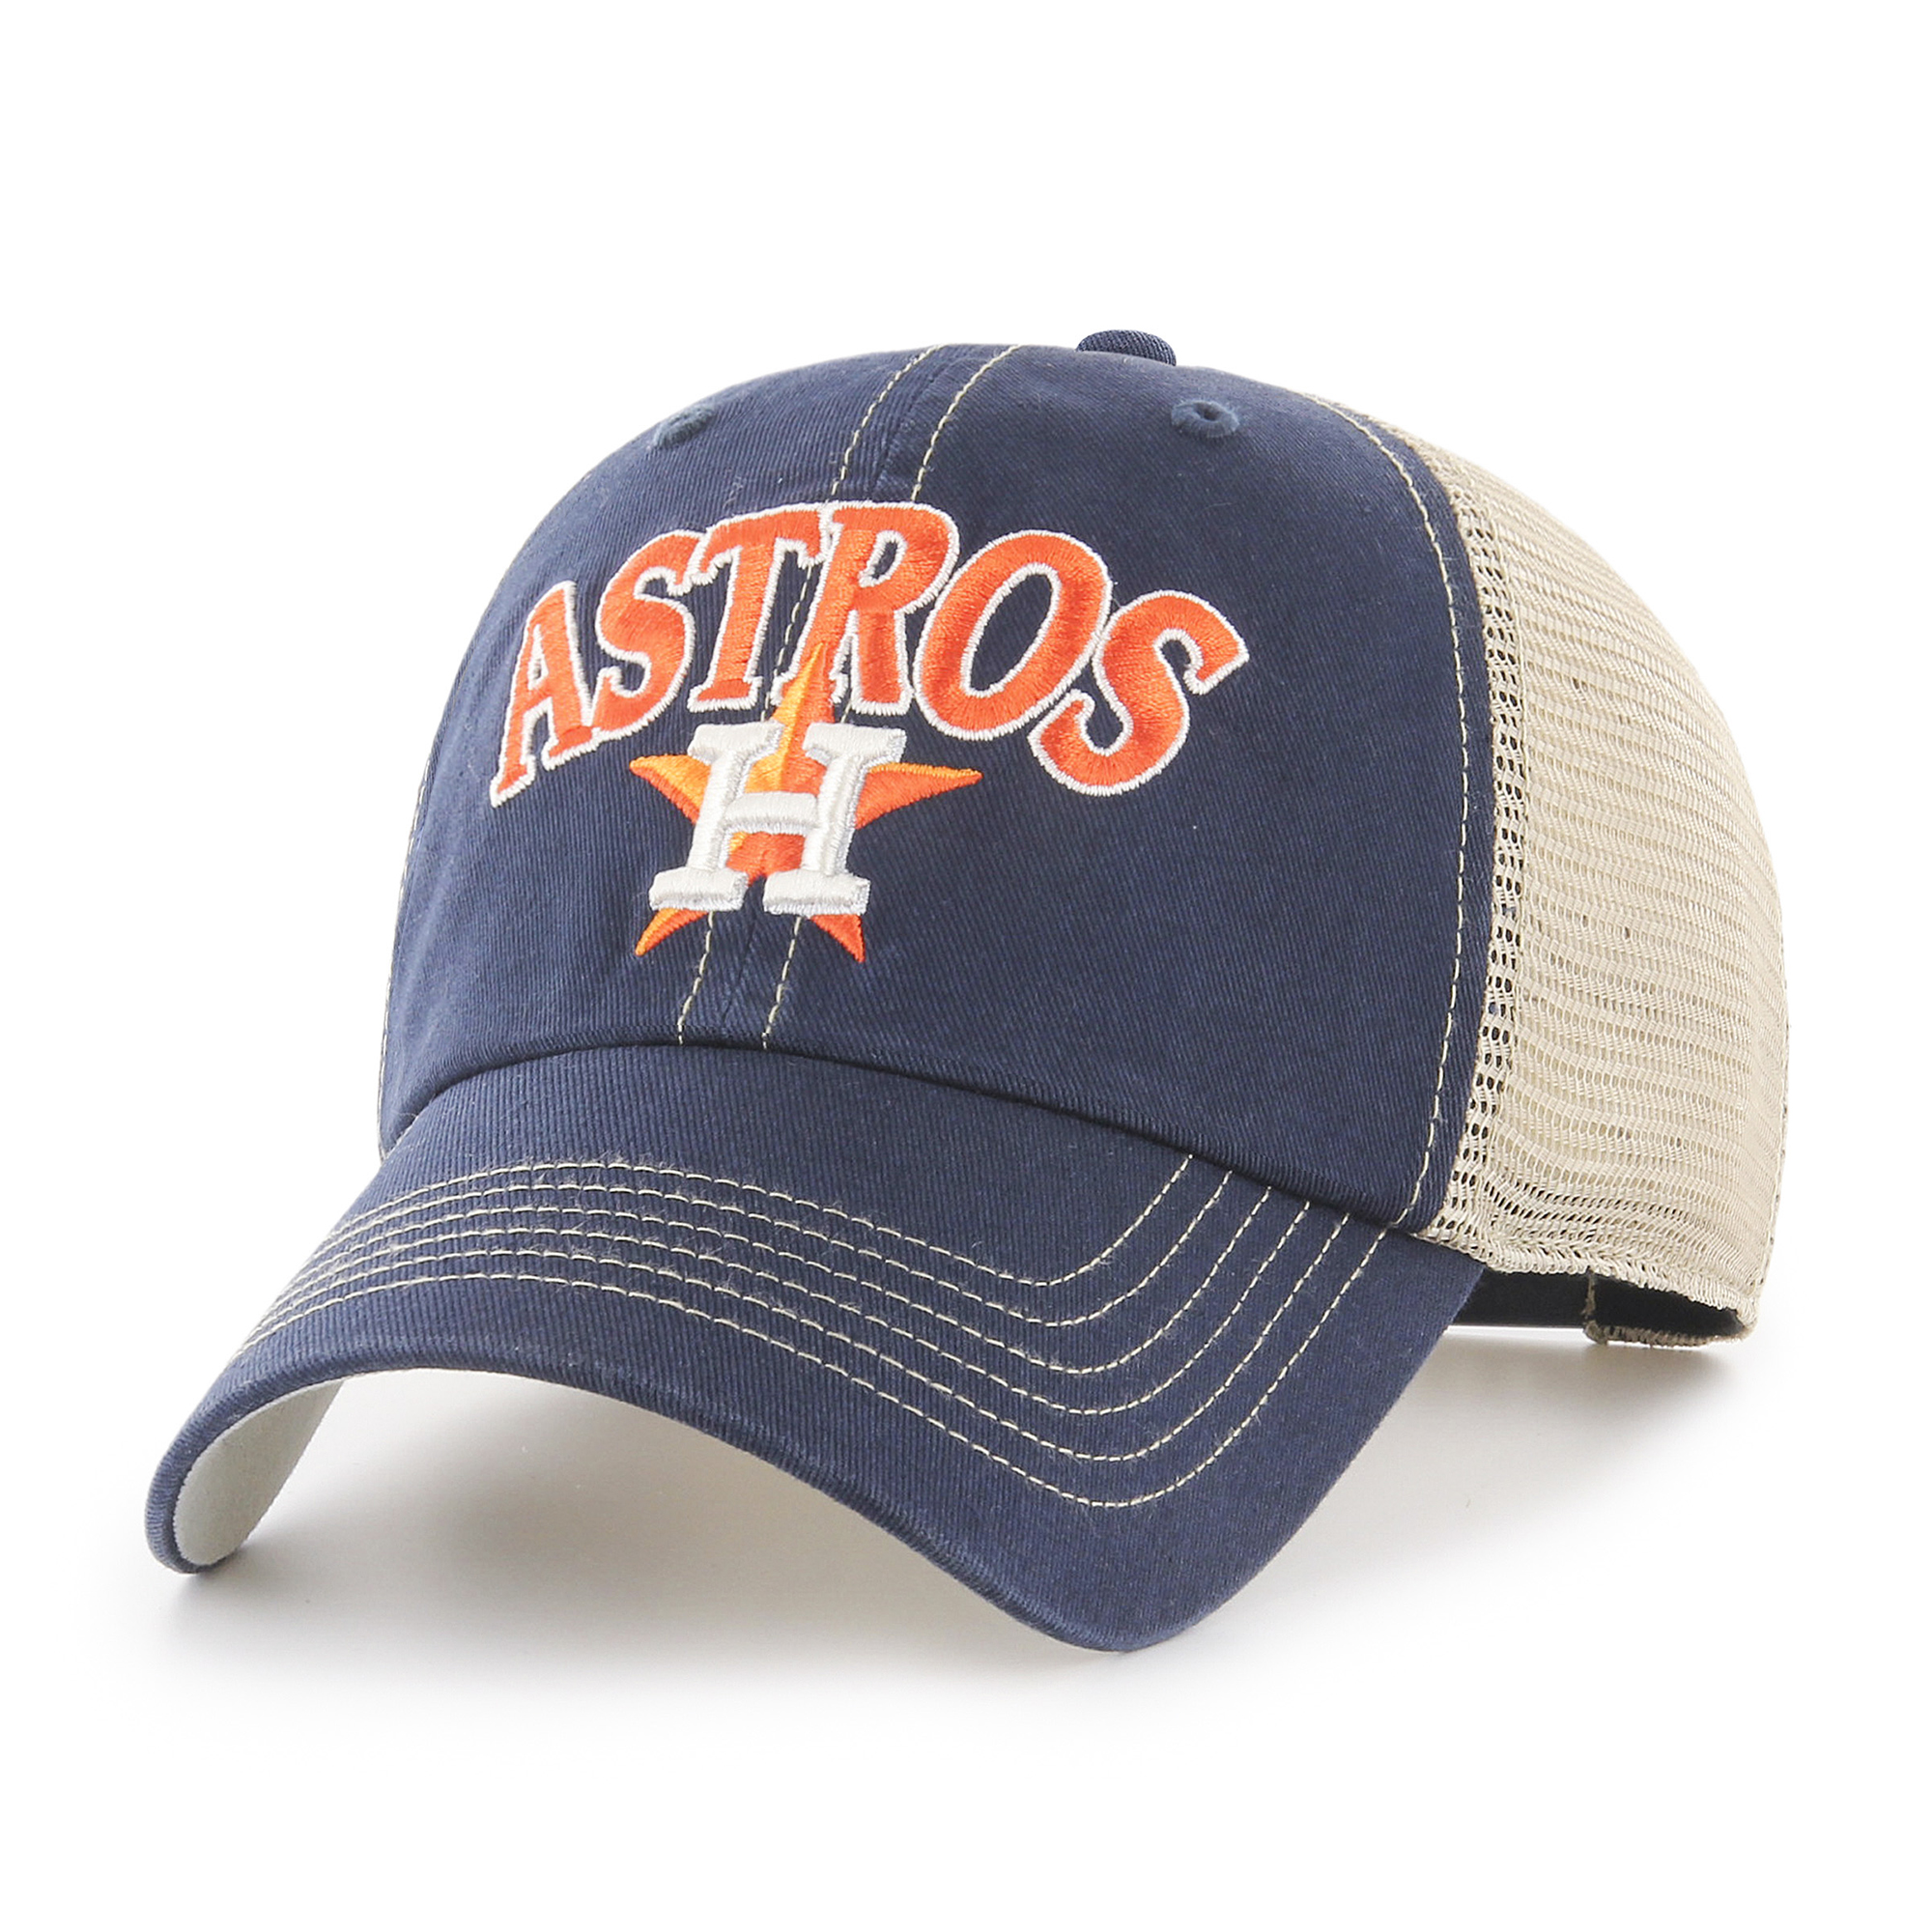 MLB Houston Astros Aliquippa Adjustable Cap/Hat by Fan Favorite